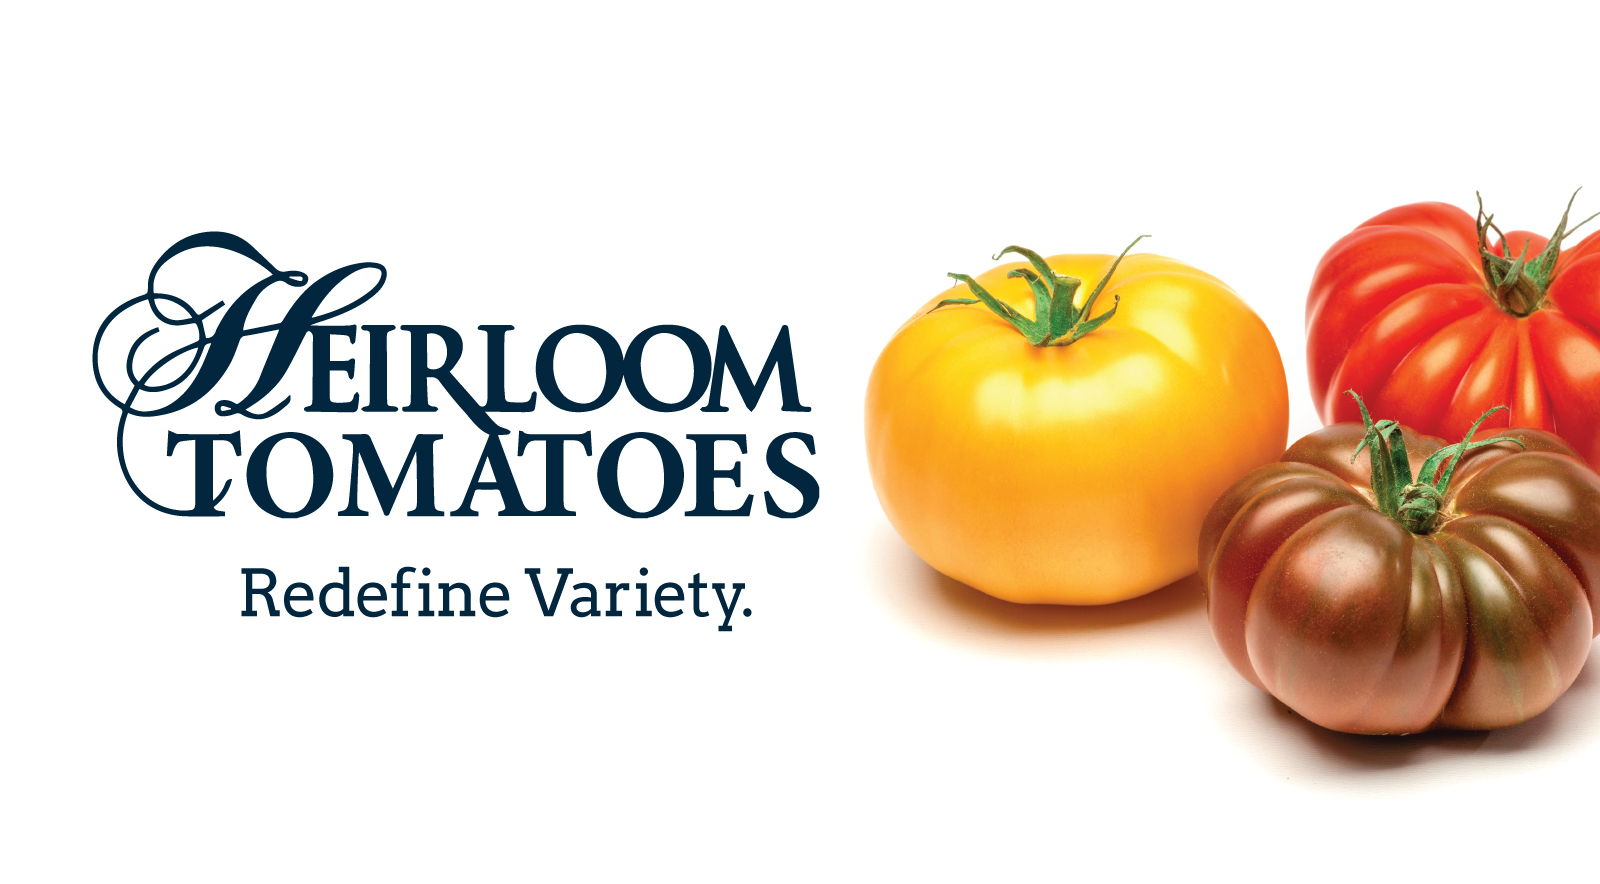 N0124-Website-Slider-Update-heirlooms